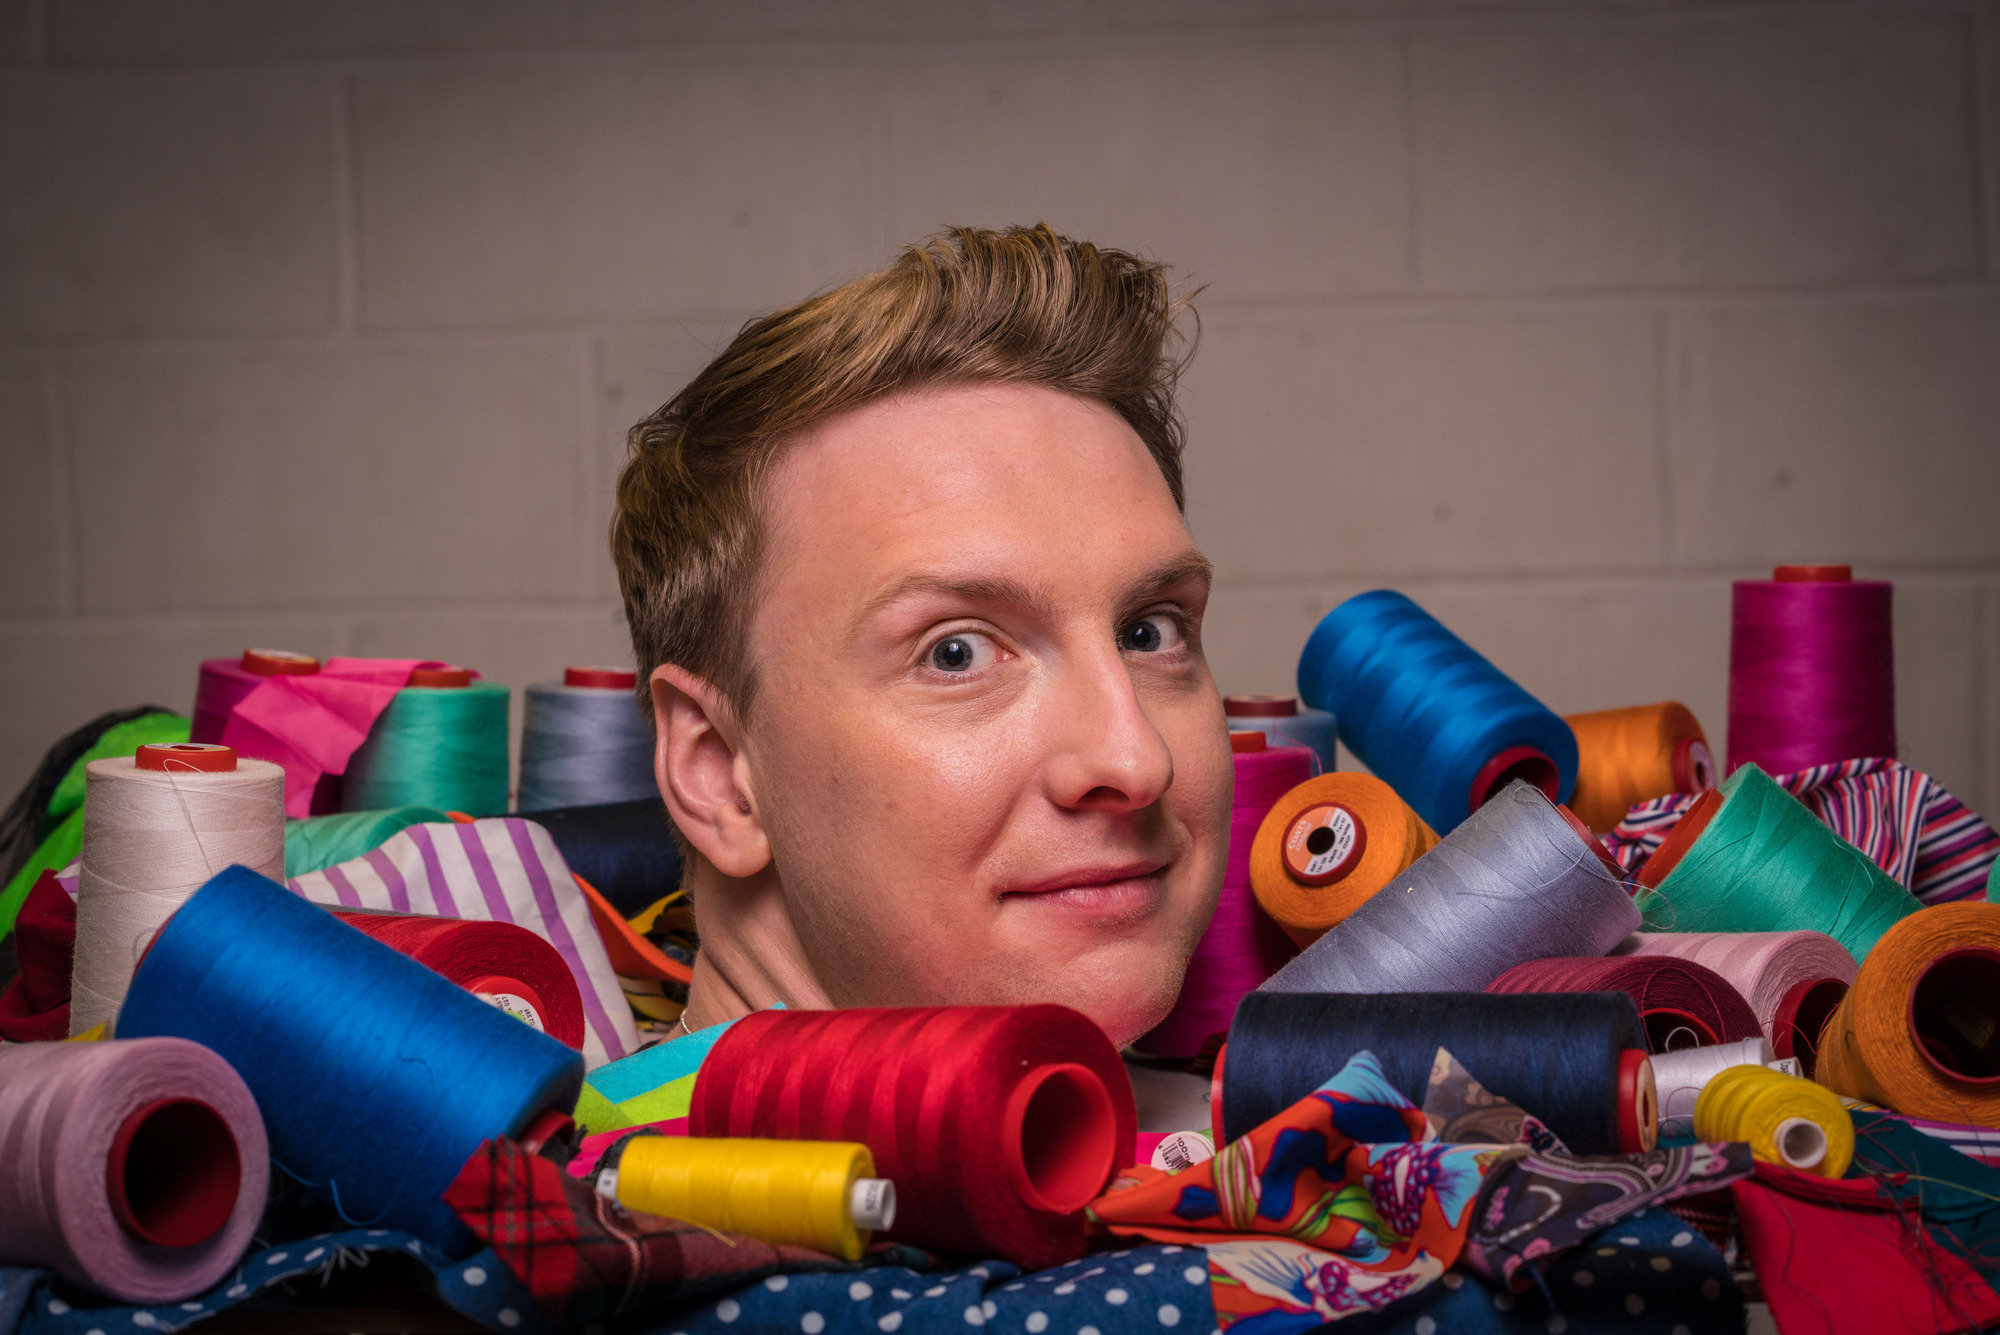 Joe Lycett is the new host of The Great British Sewing Bee